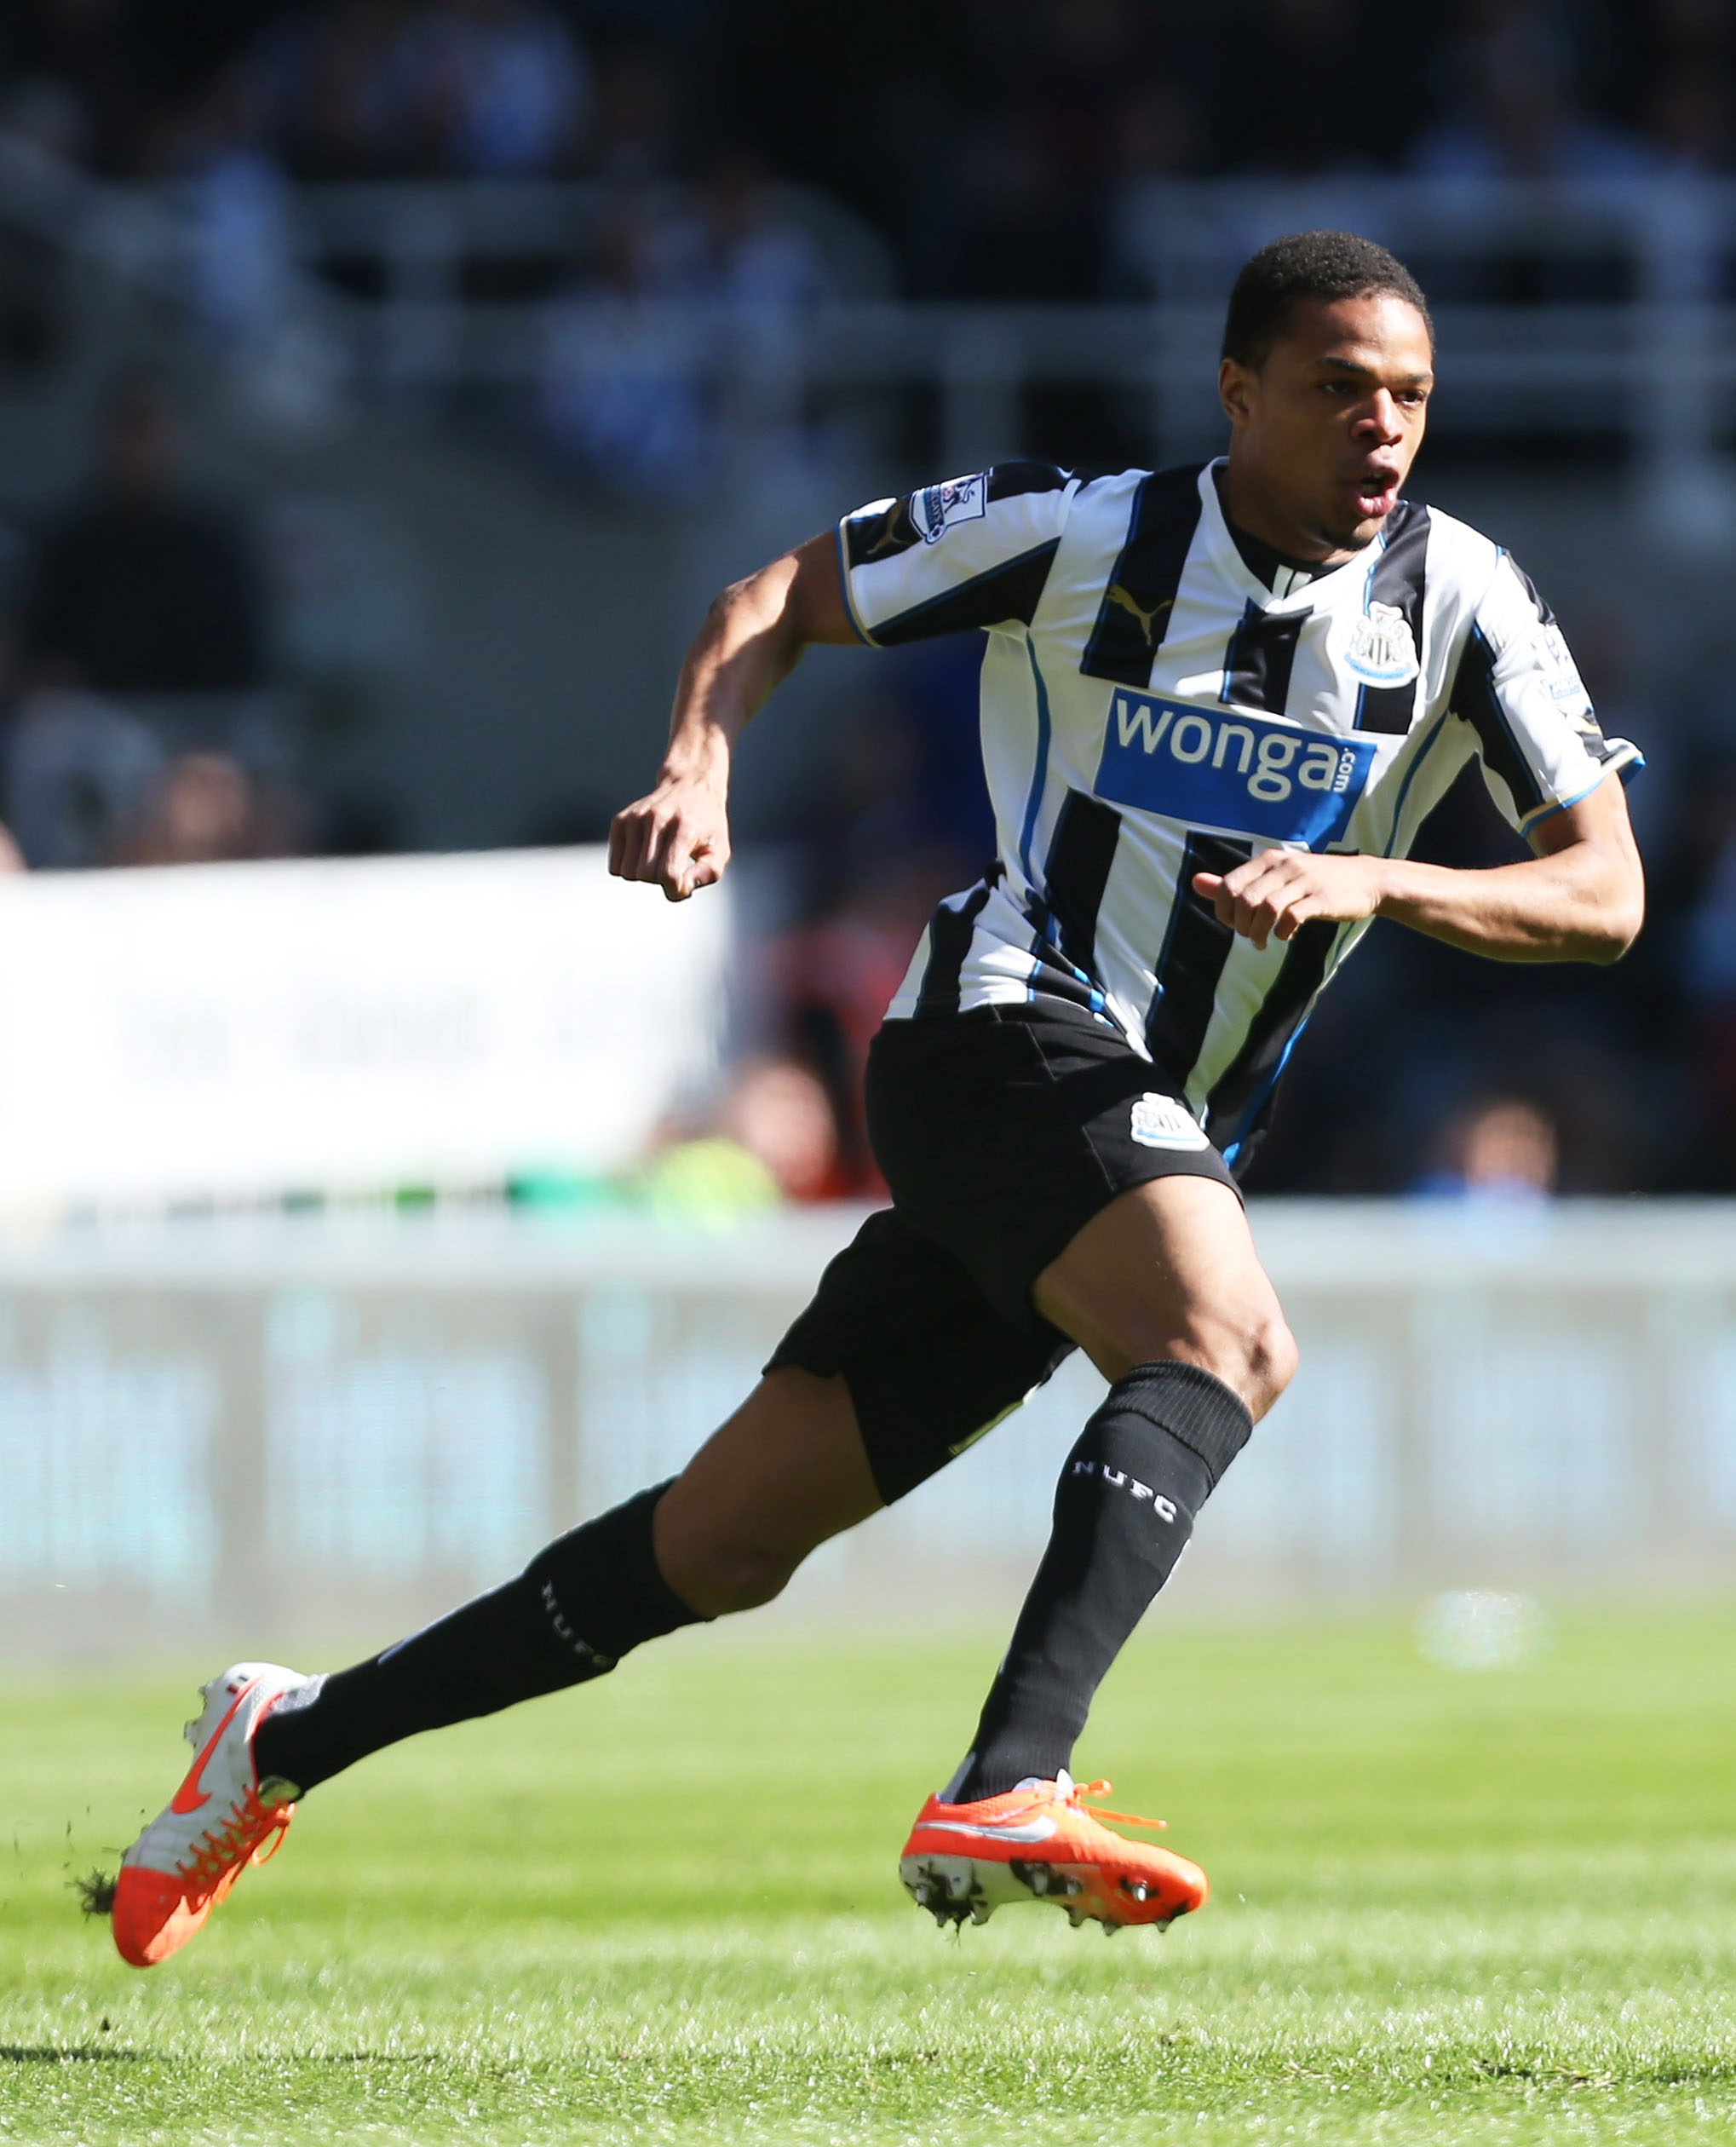 QUESTIONABLE COMMITMENT: Newcastle will seek assurances about Loic Remy's commitment before stepping up their interest in their former loanee